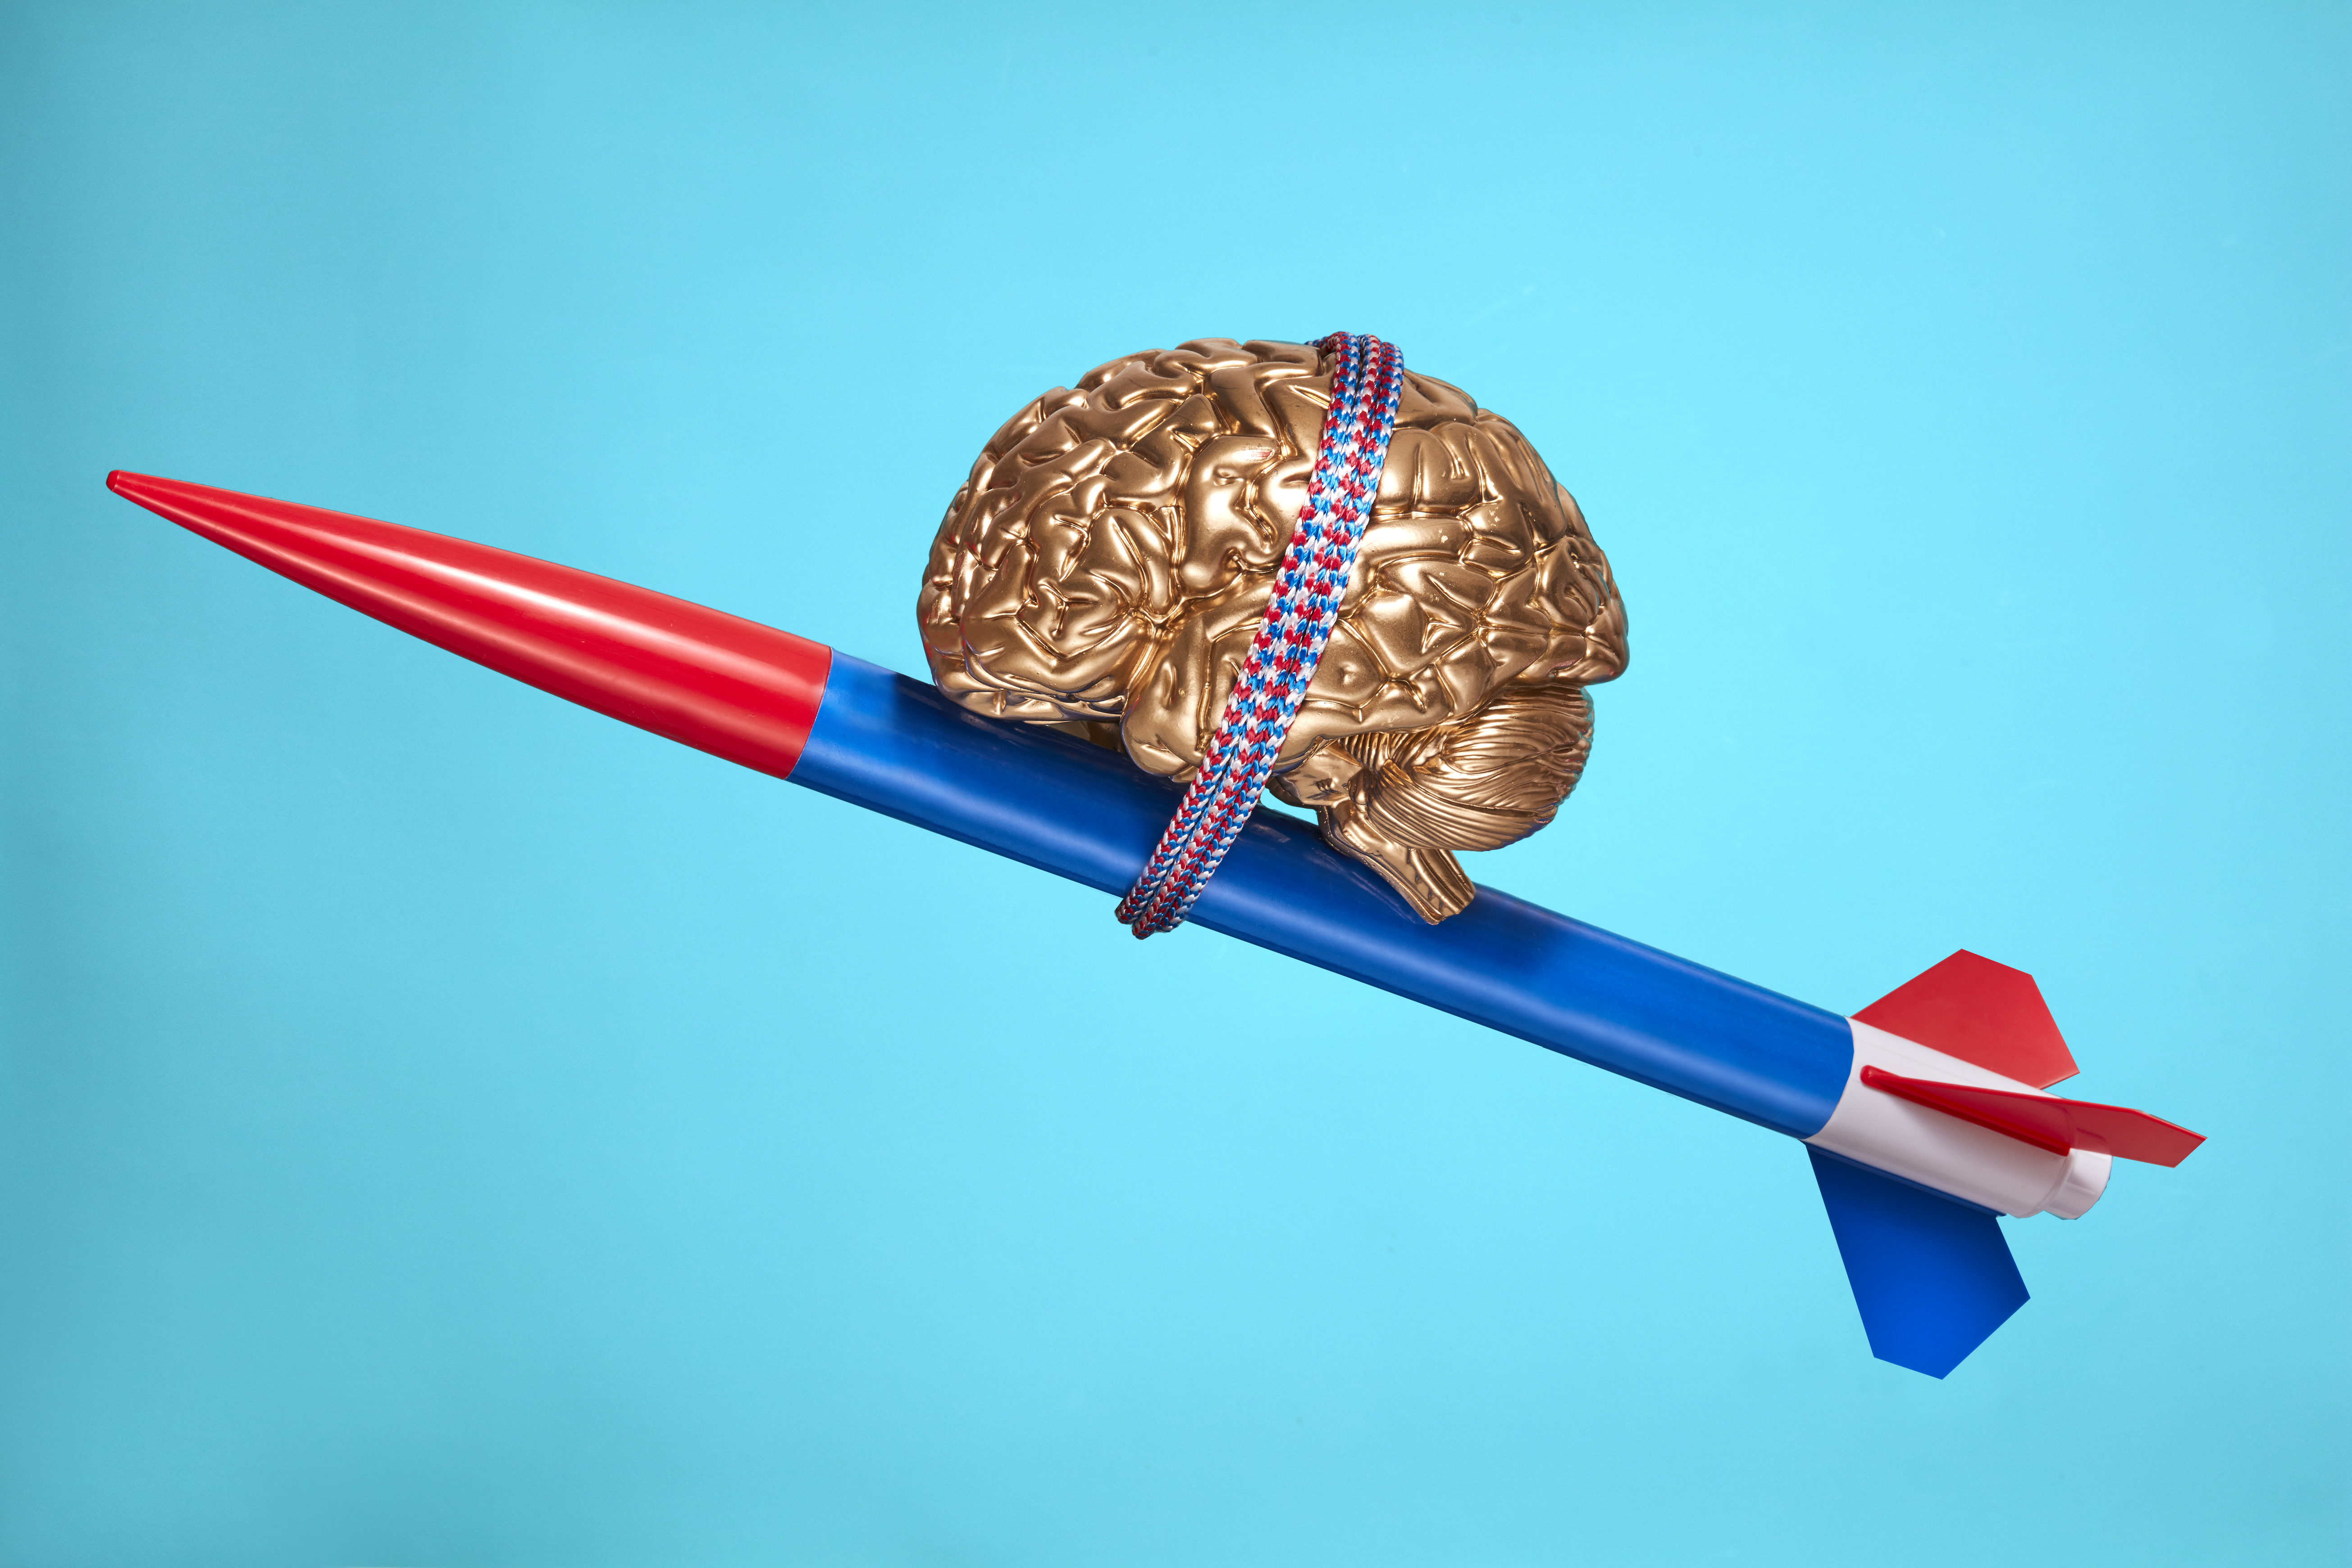 A model brain atop a rocket symbolizes innovation, progress, and psychology topics.